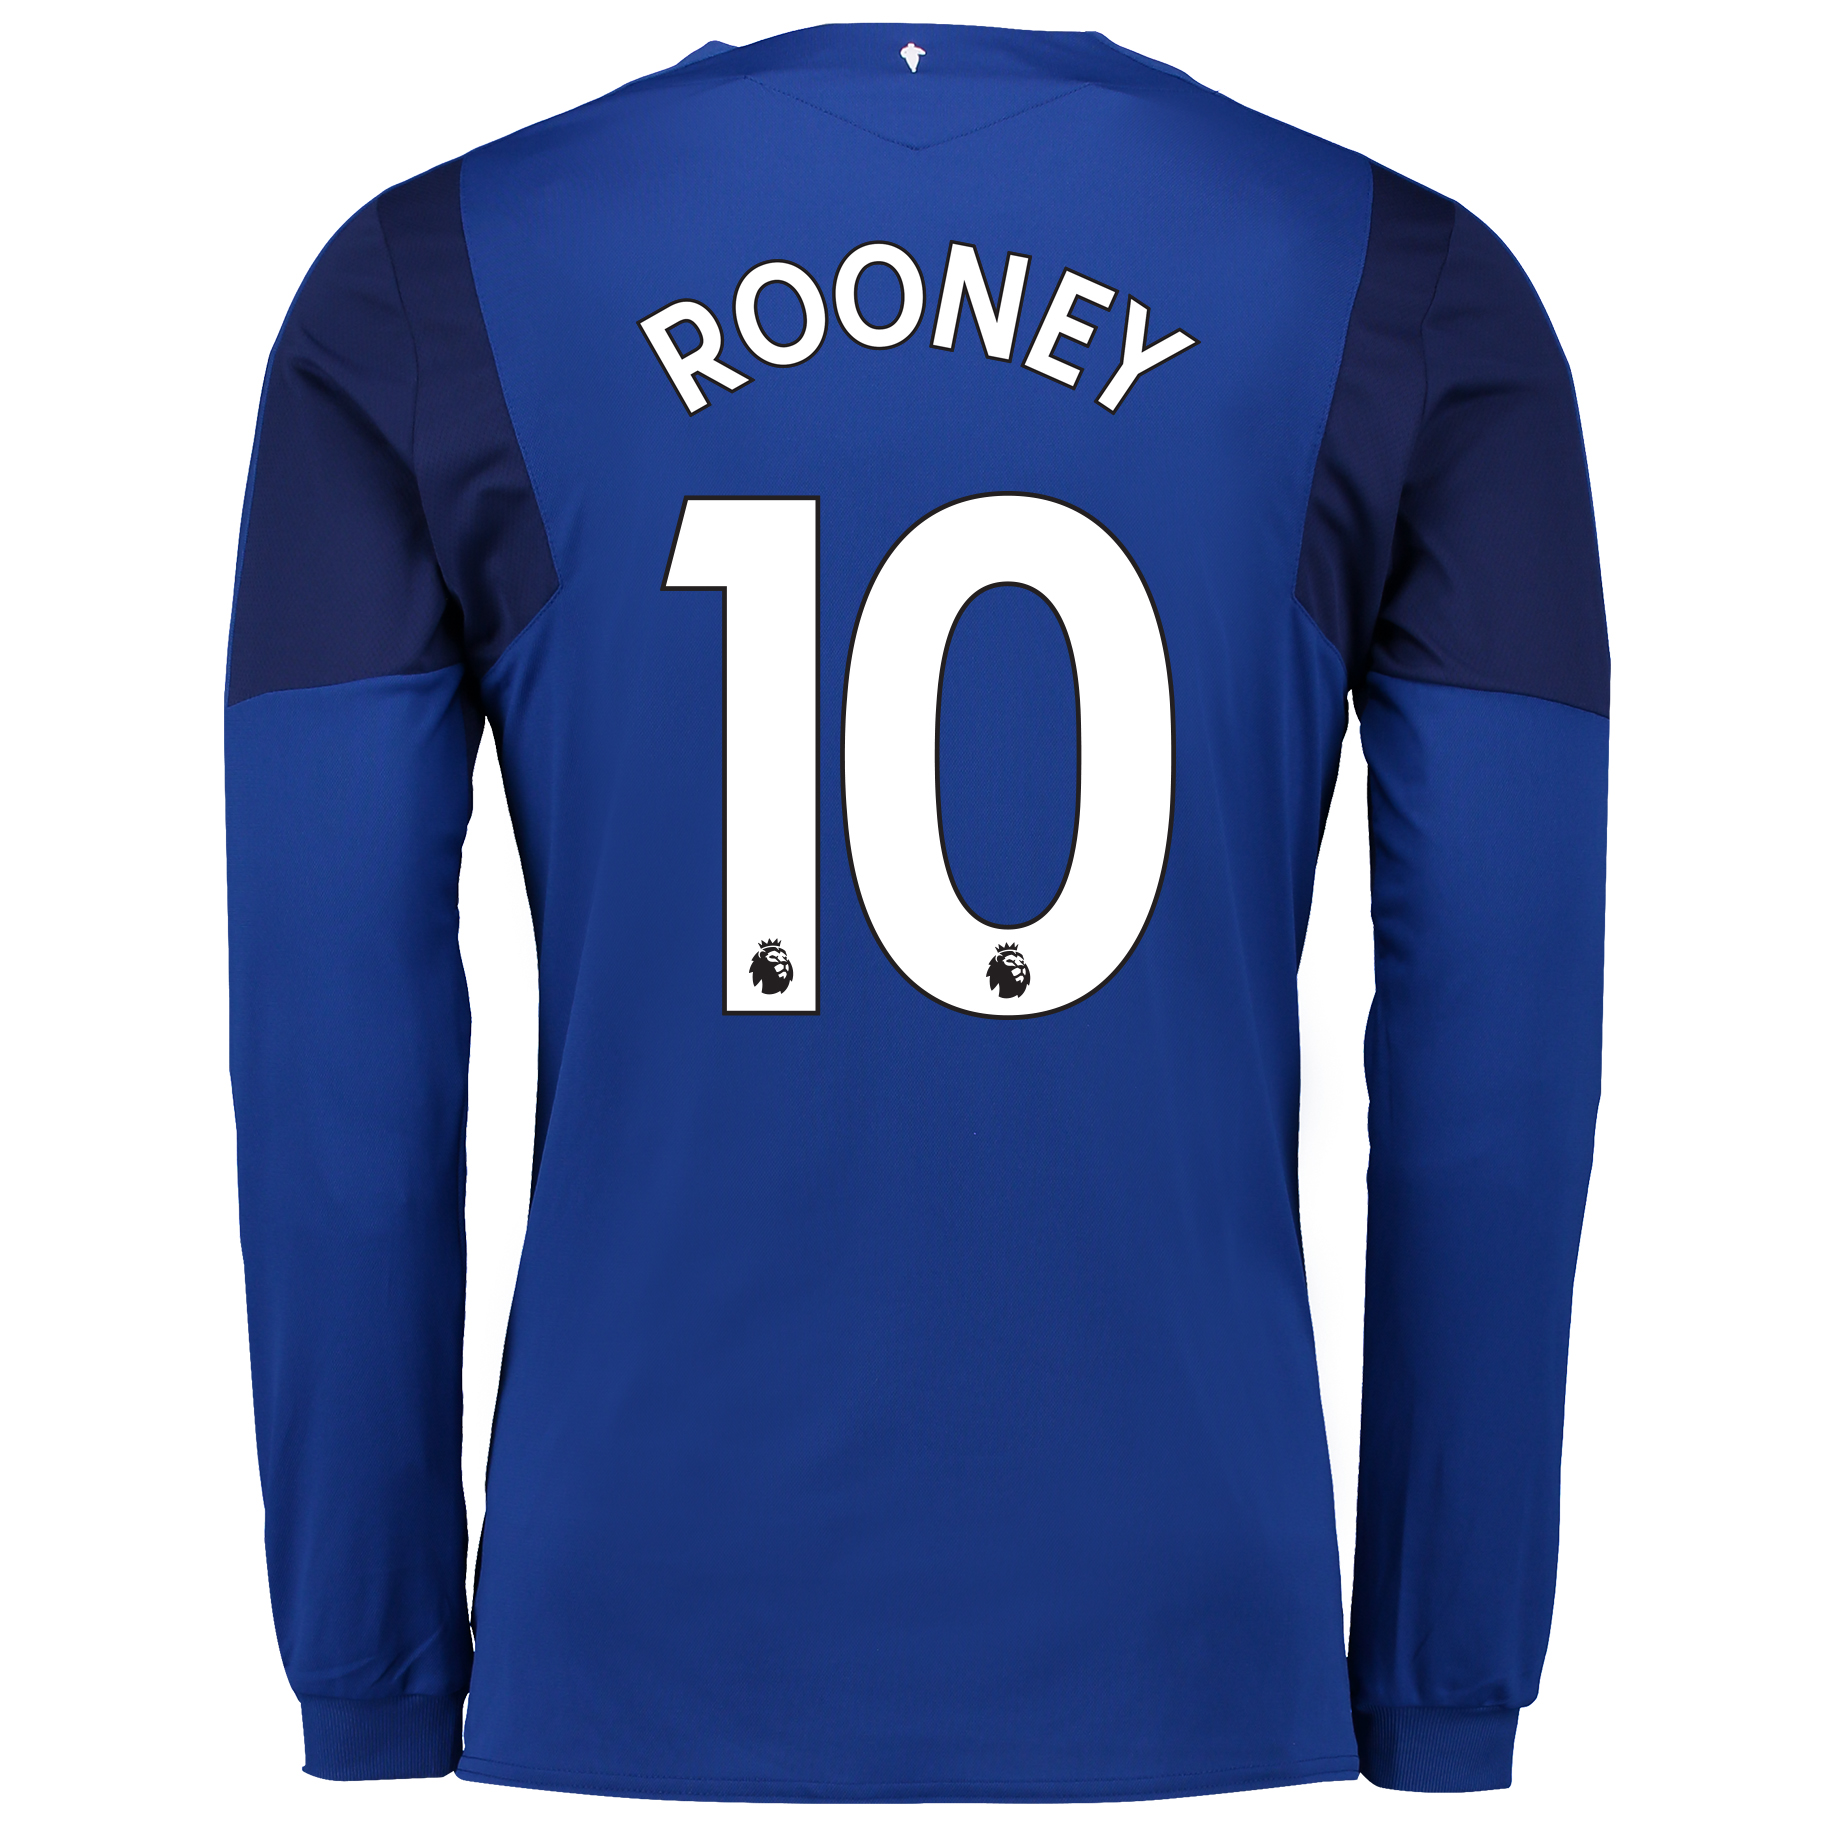 Everton Home Shirt 2017/18 - Junior - Long Sleeved with Rooney 10 prin